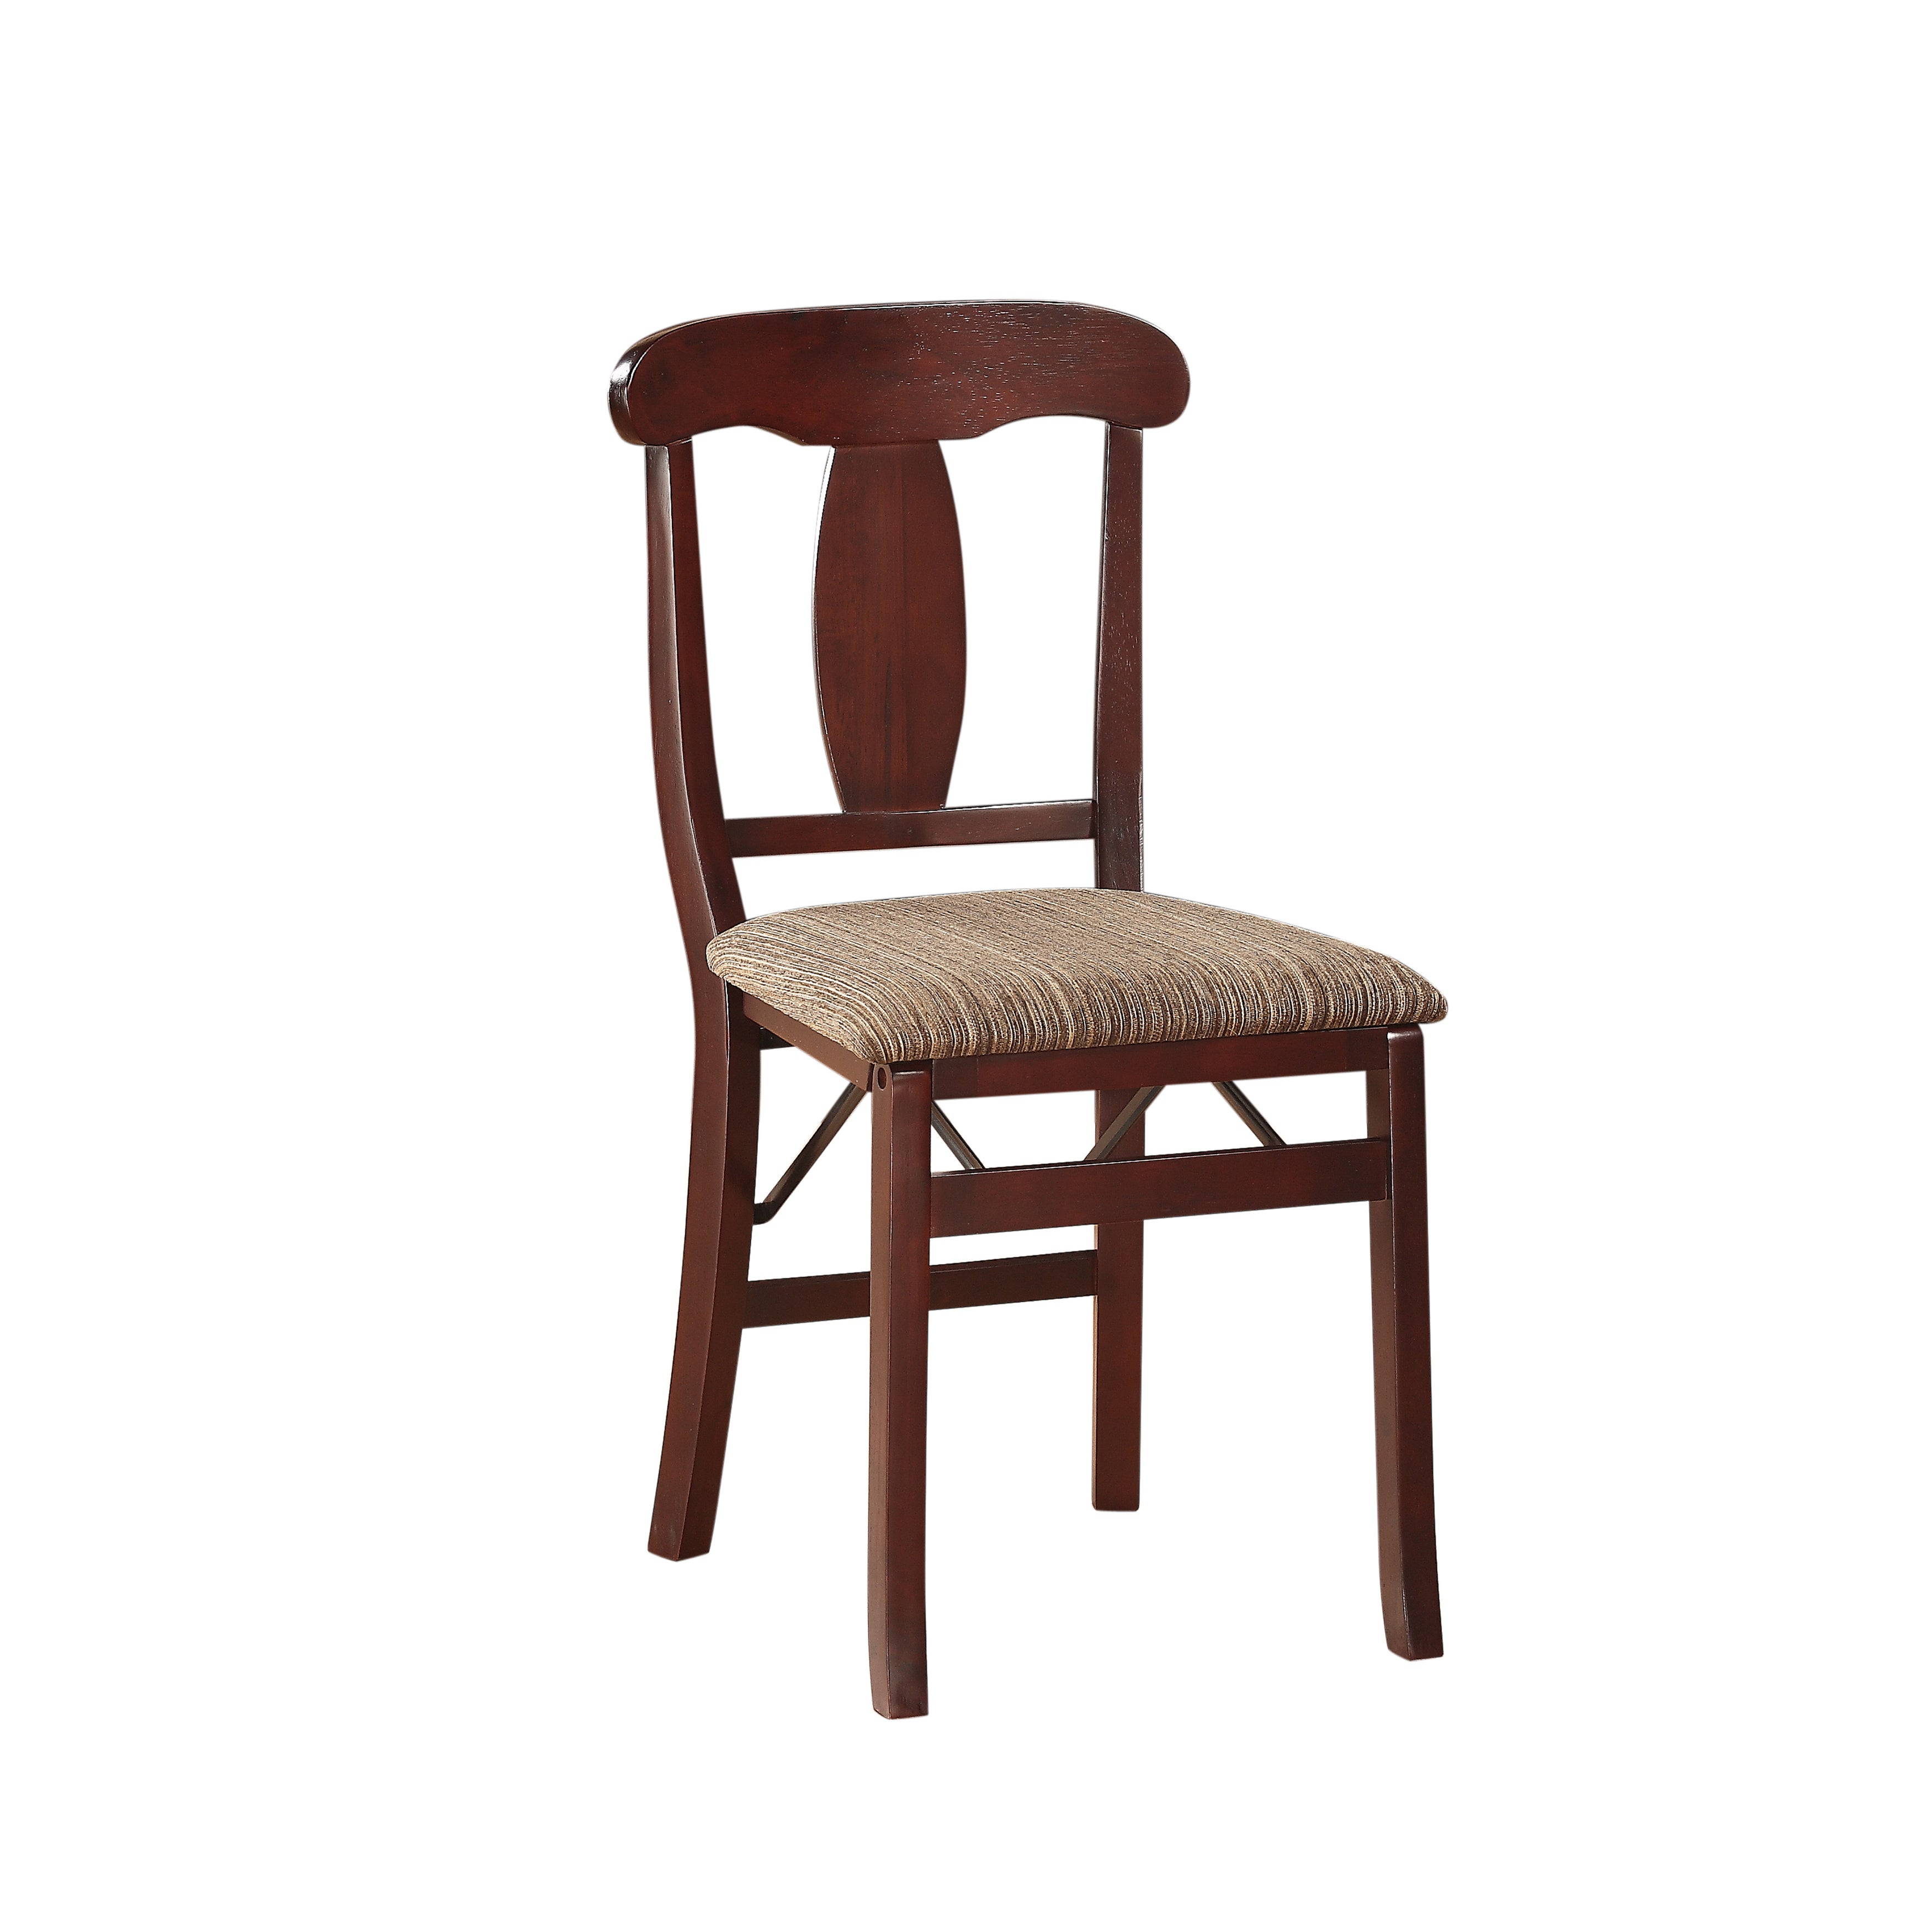 Excellent Linon Triena Emily Folding Chairs Squirreltailoven Fun Painted Chair Ideas Images Squirreltailovenorg